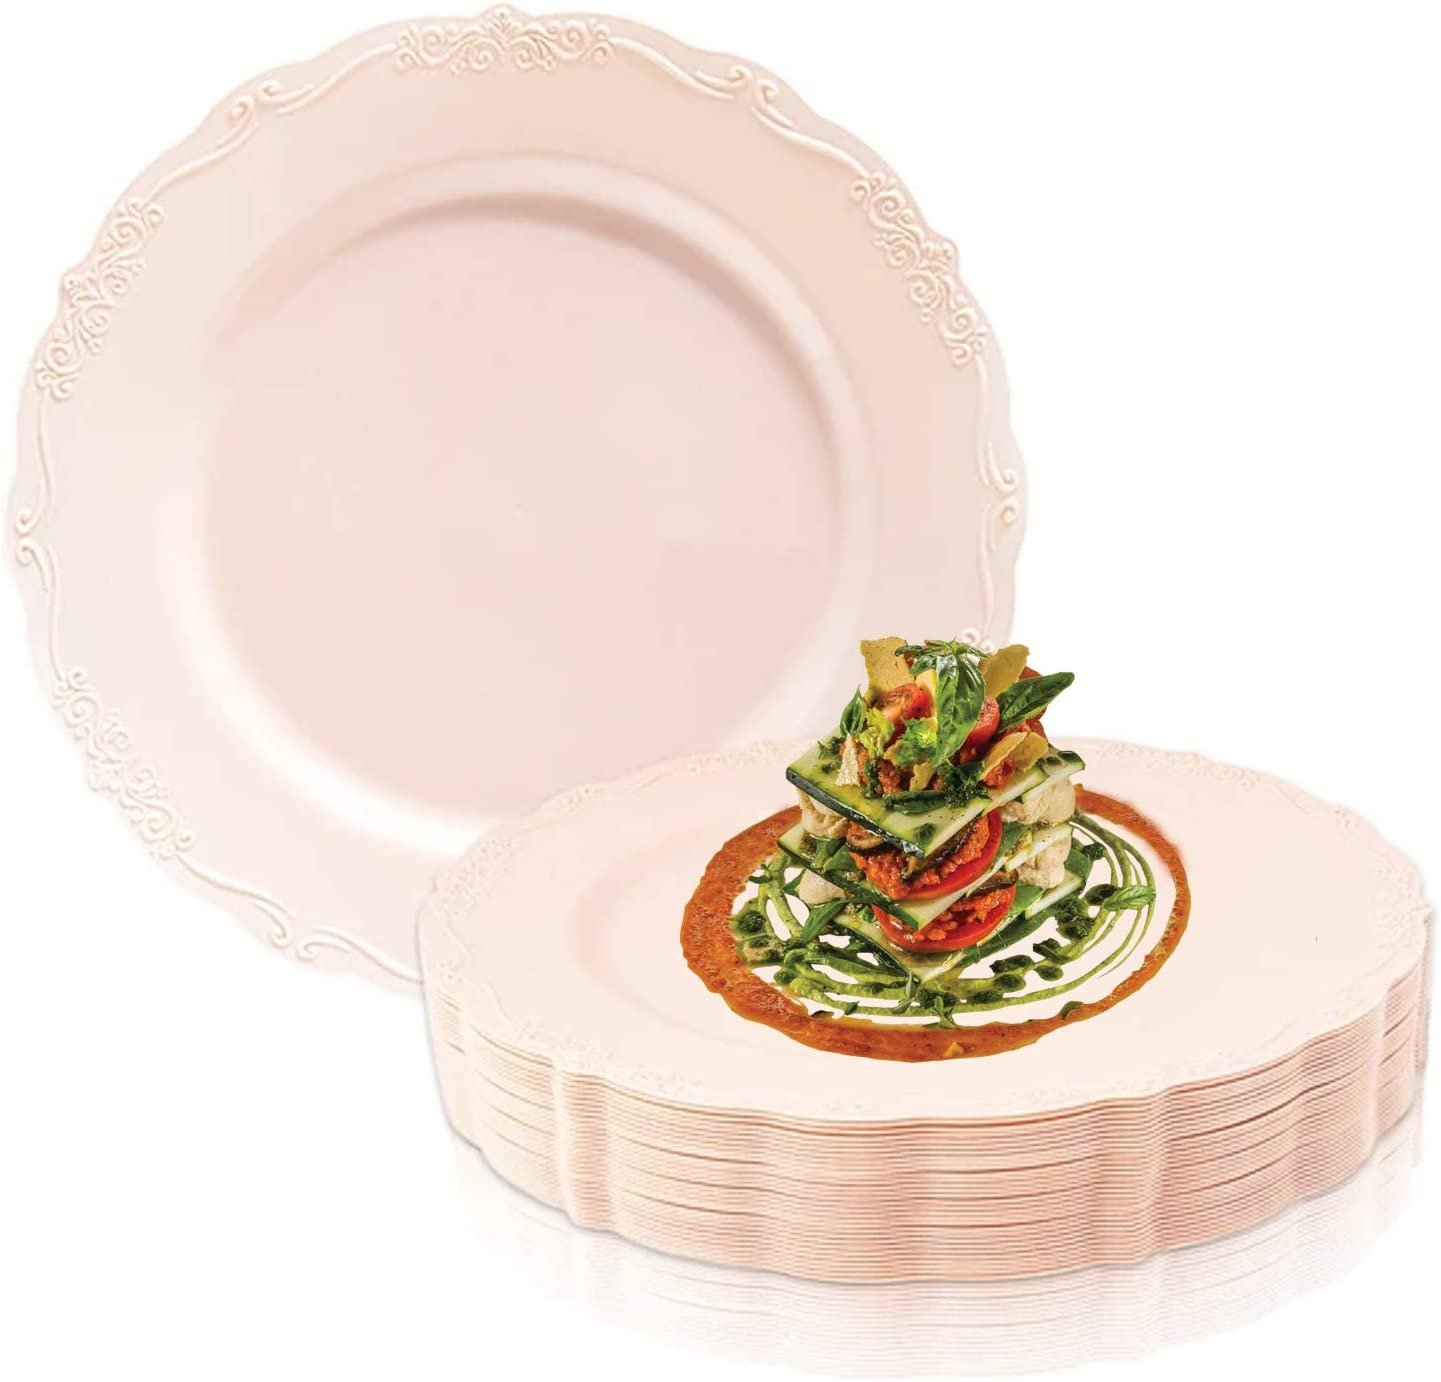 120pcs Square Dinner Plates or Salad Plates Wedding /& Party Supplies Reusable Large Plates Disposable Plastic Plates Deluxe Quality